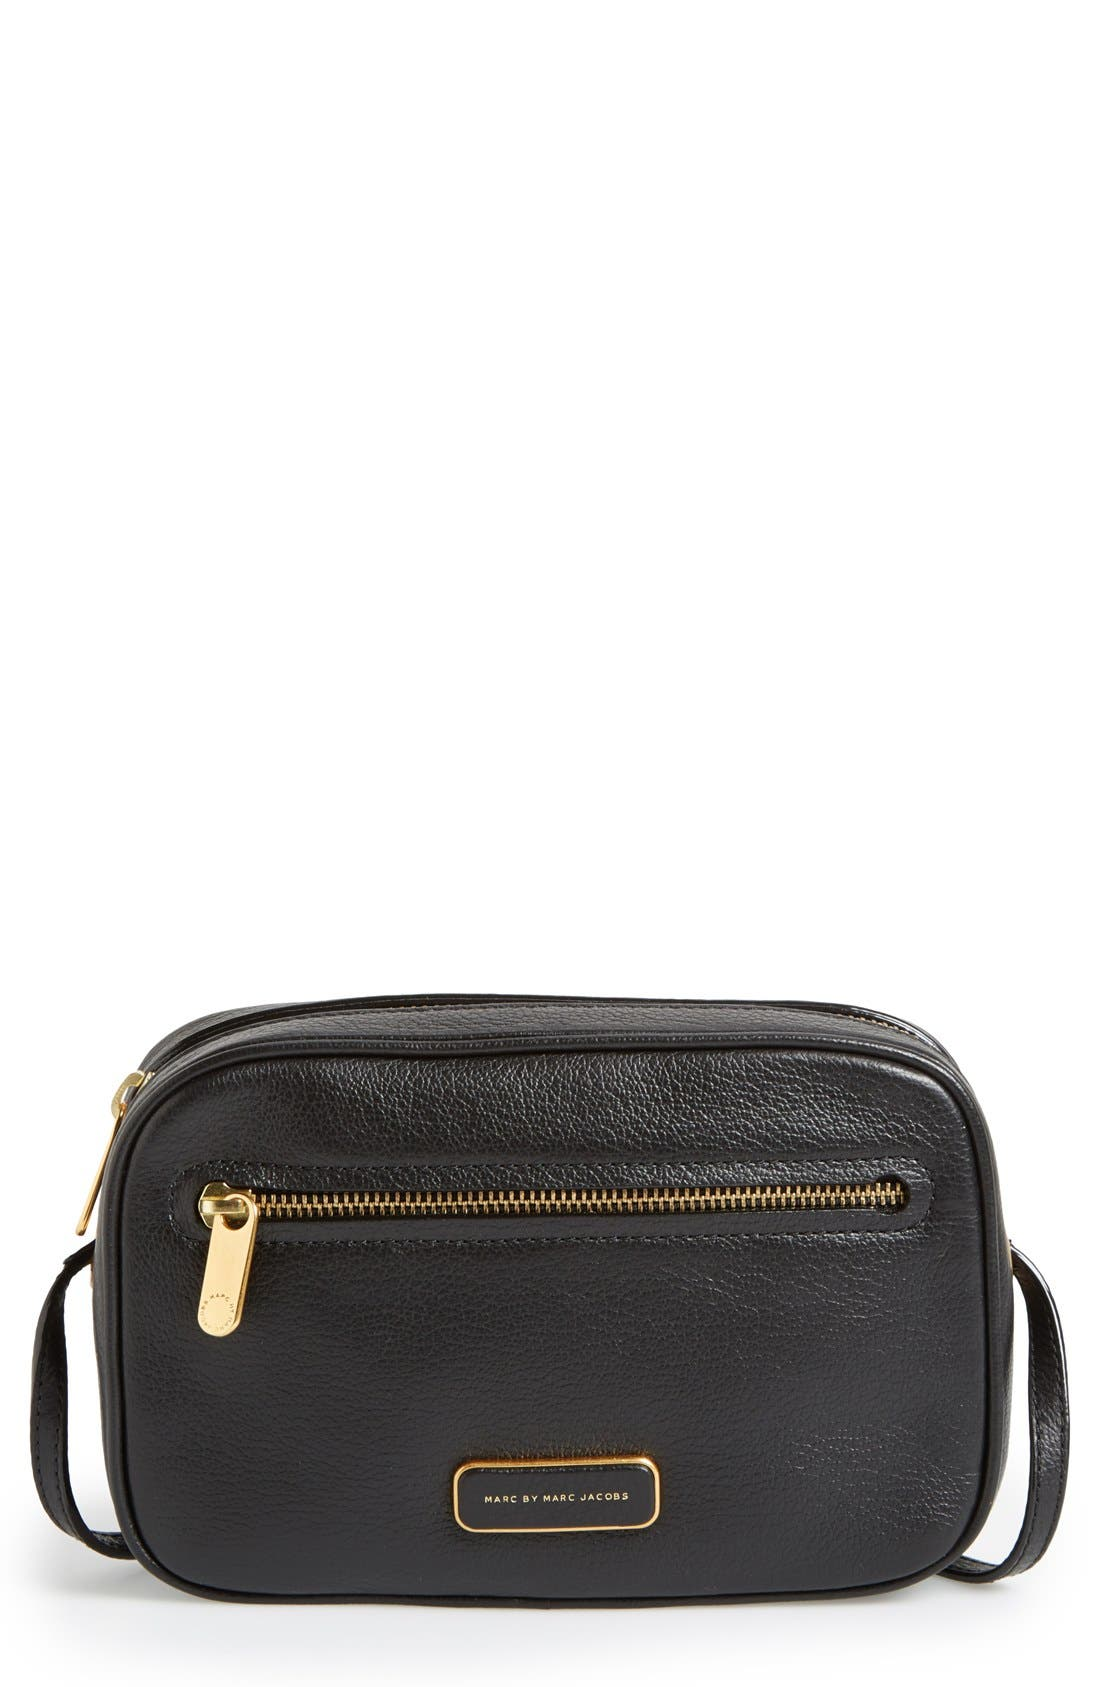 Alternate Image 1 Selected - MARC BY MARC JACOBS 'Sally' Crossbody Bag